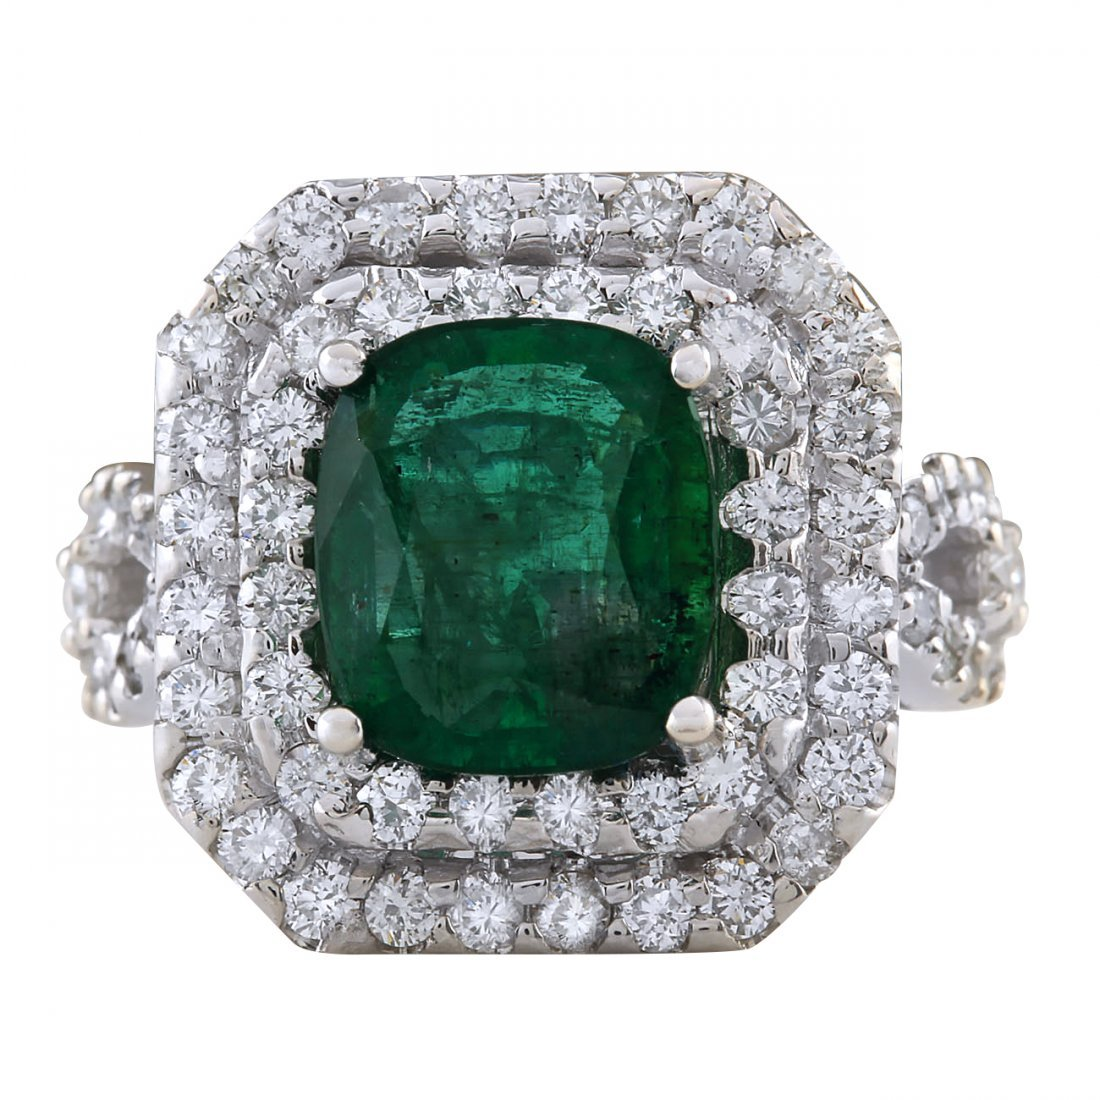 5.31CTW Natural Emerald And Diamond Ring In 14K White